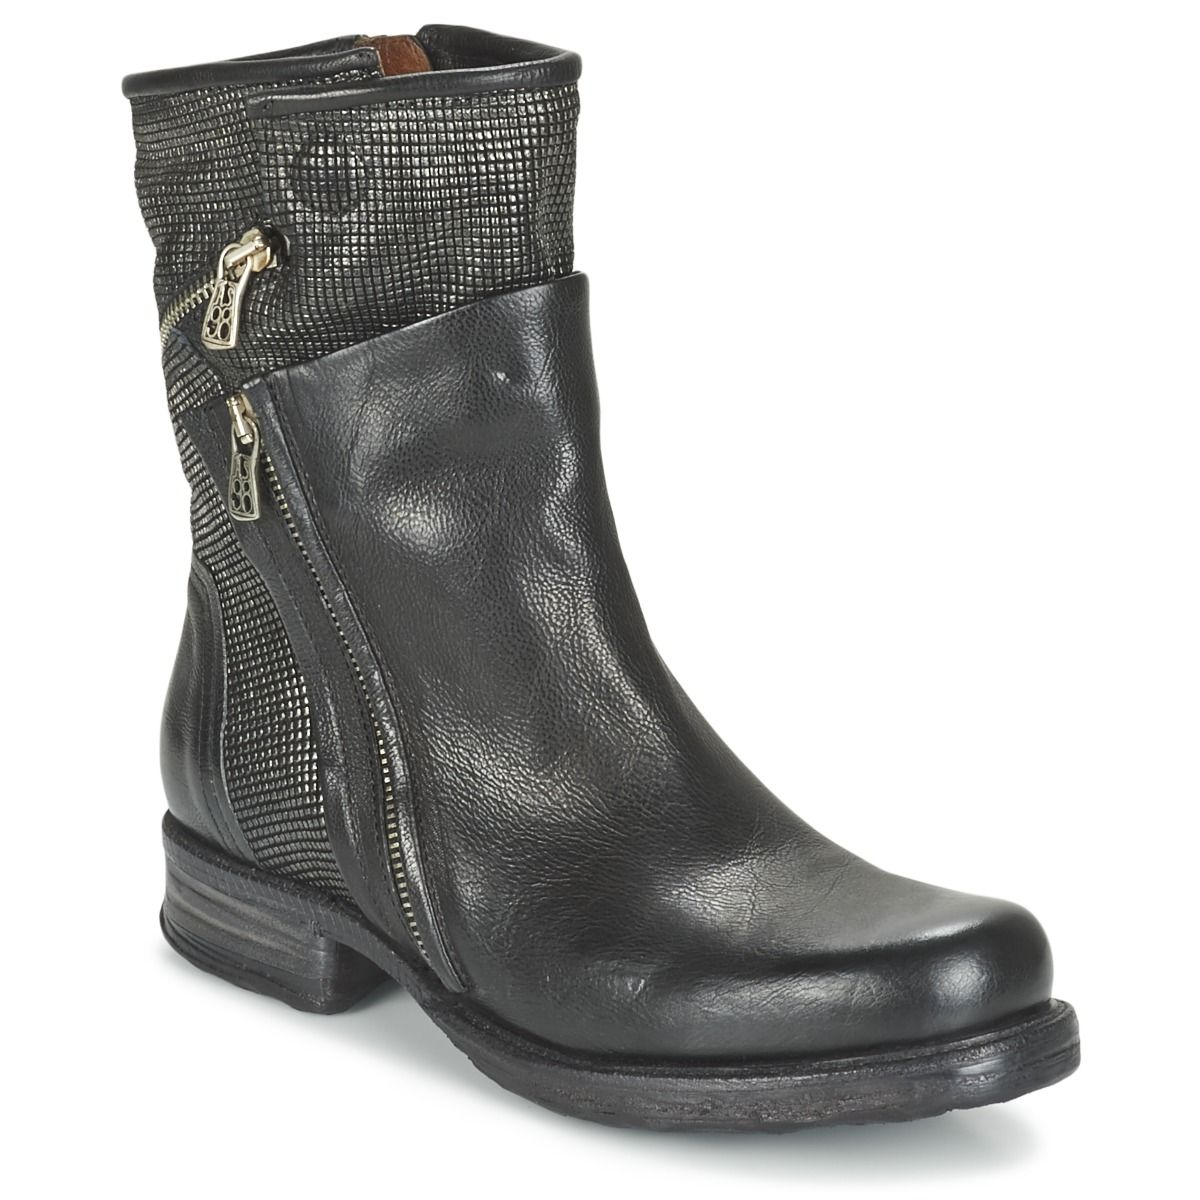 new concept 83fad 0d237 airstep biker boots sale, Airstep / A.S.98 - SAINT LO Women ...